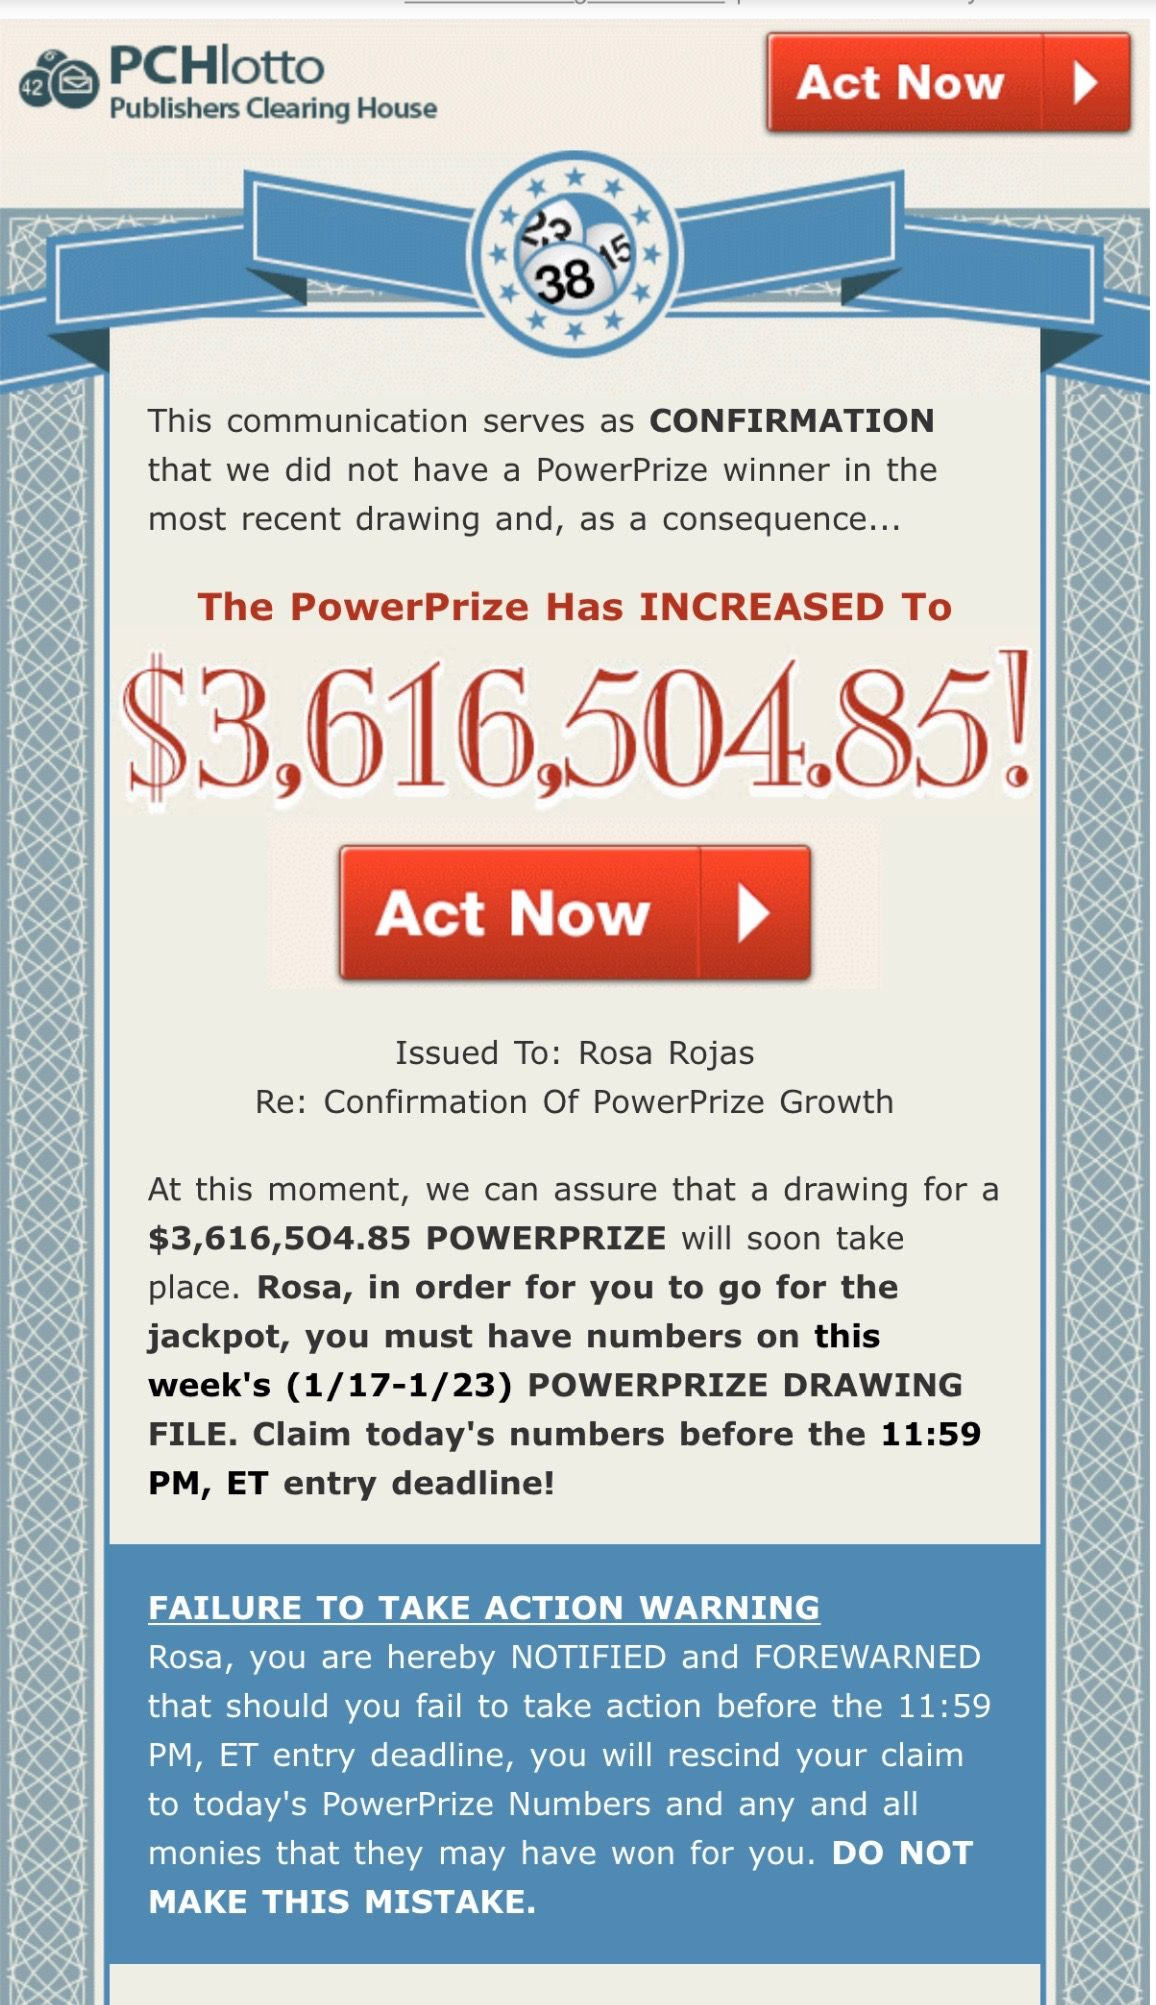 PCH LOTTO ACTNOW POWERPRIZE/I Rosa Rojas now officially